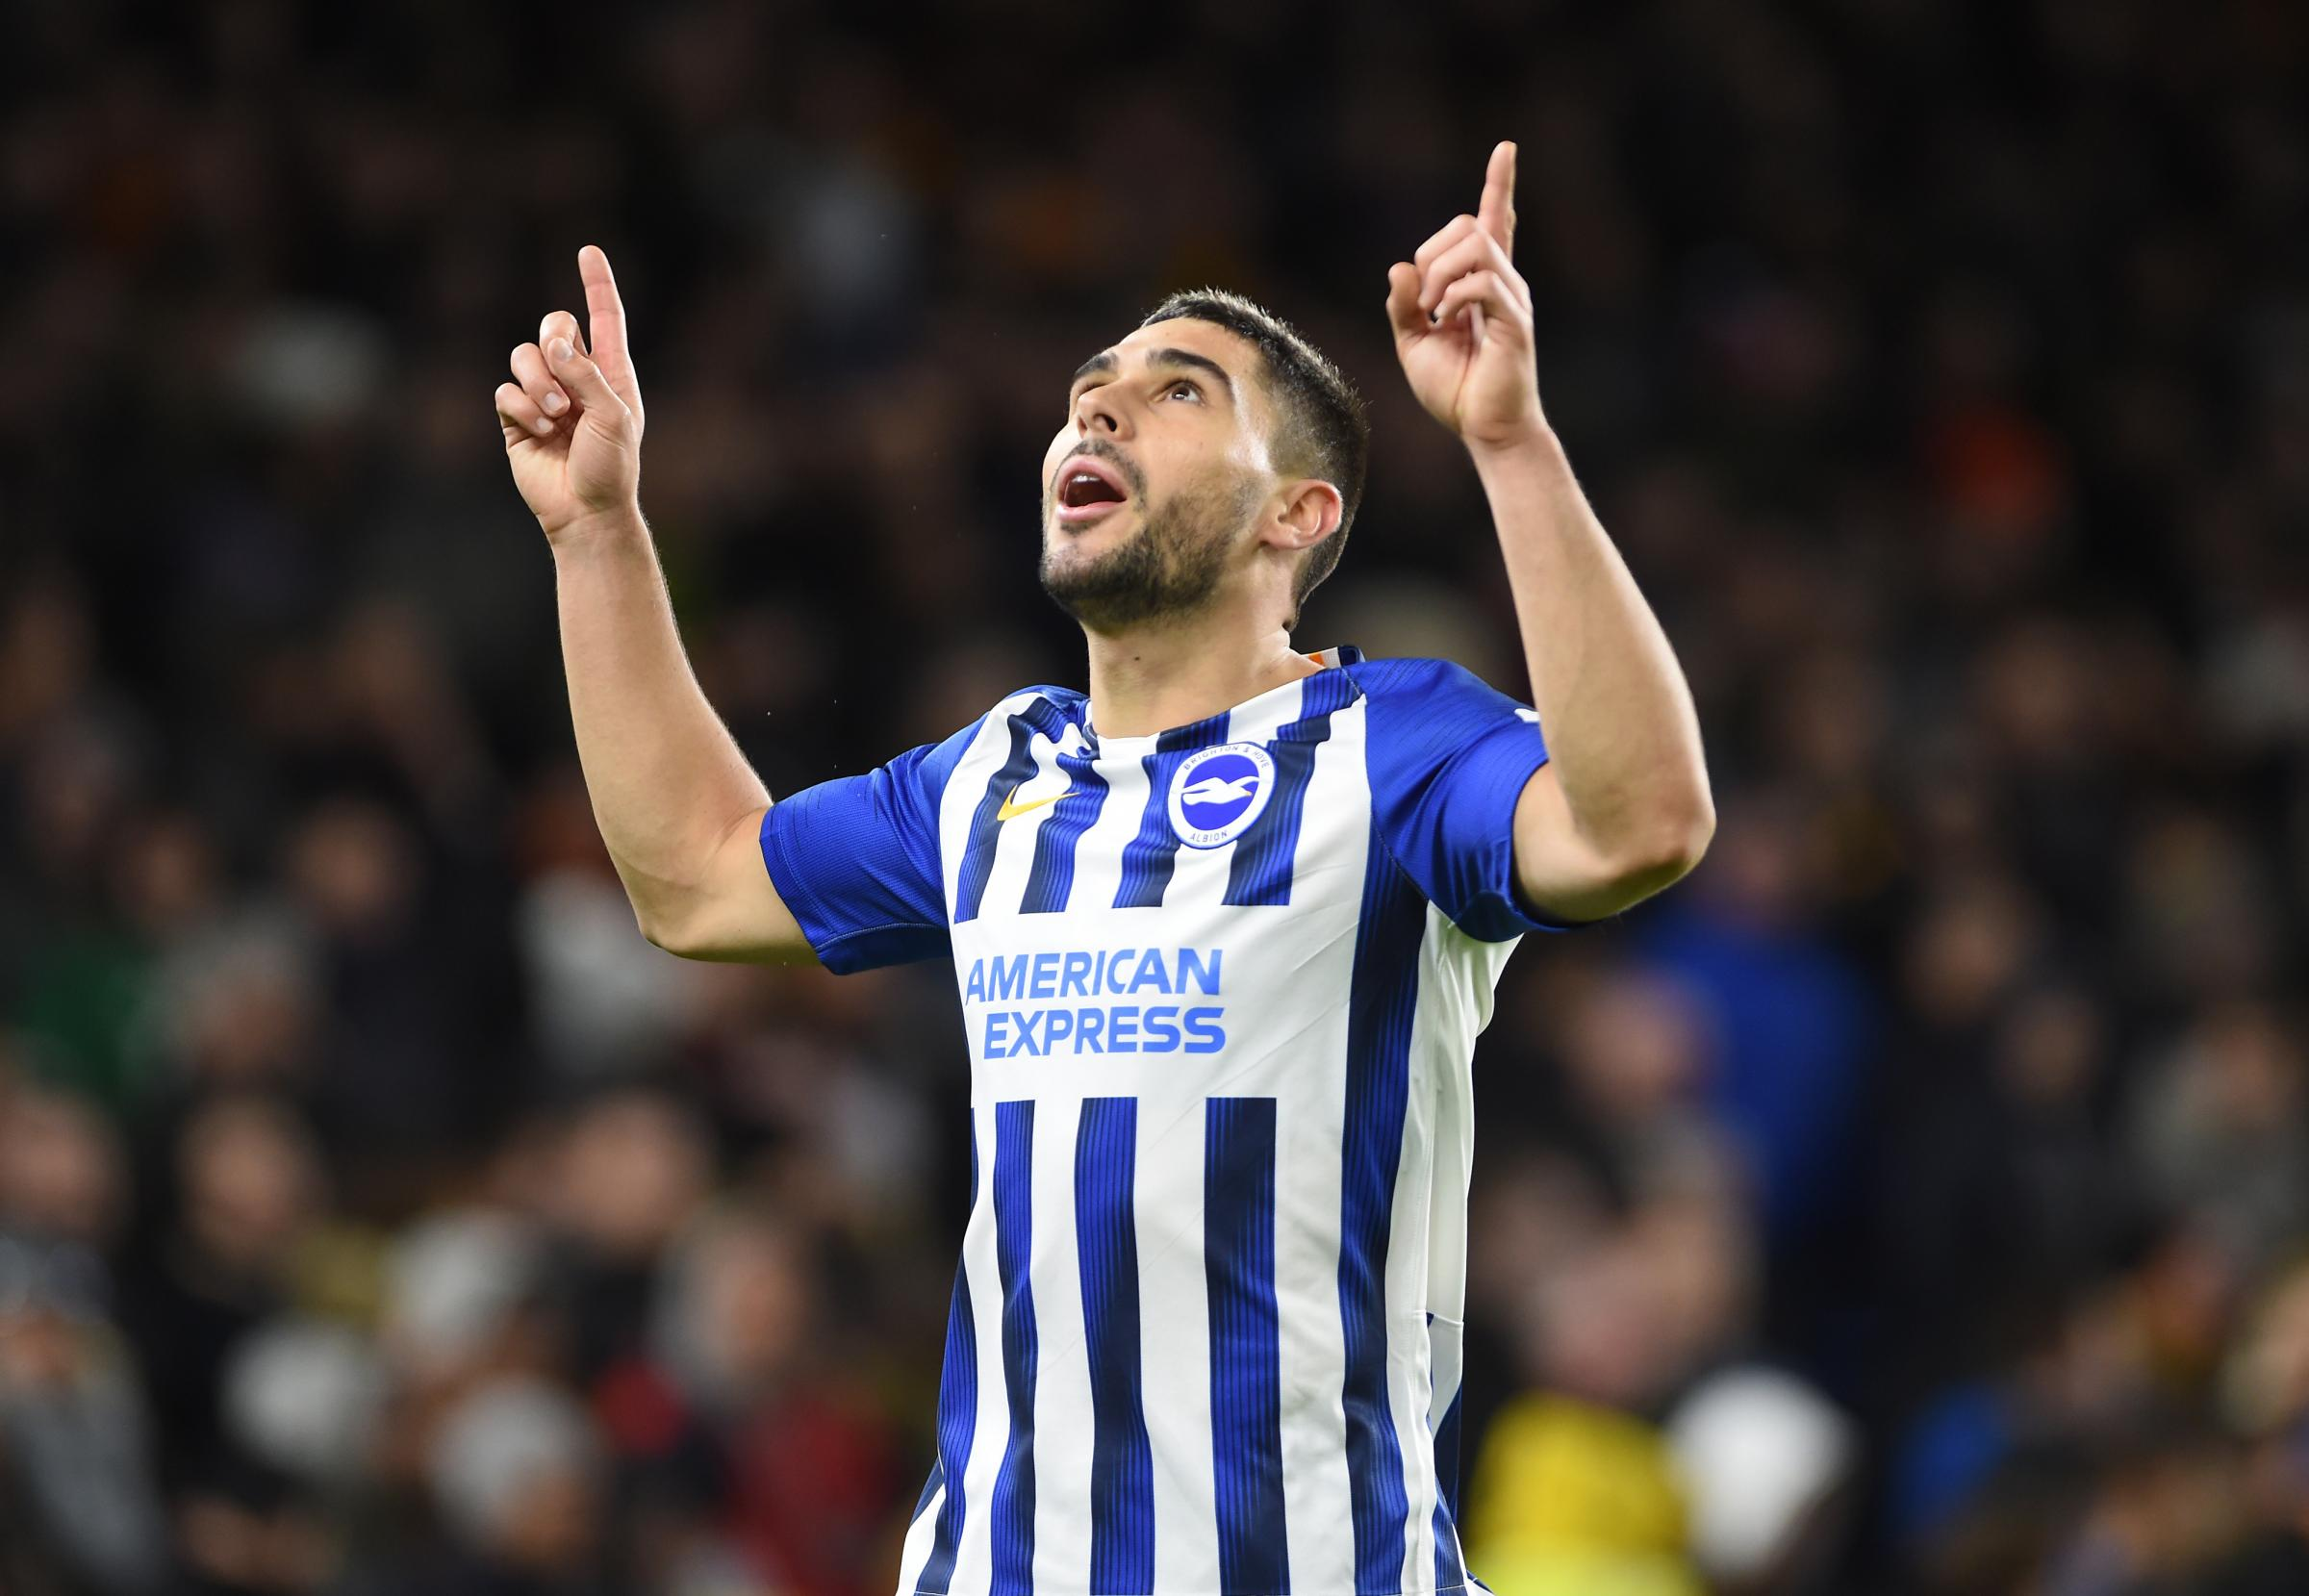 Follow Albion in action at the Amex against Wolves: Diego Jota puts Wolves level